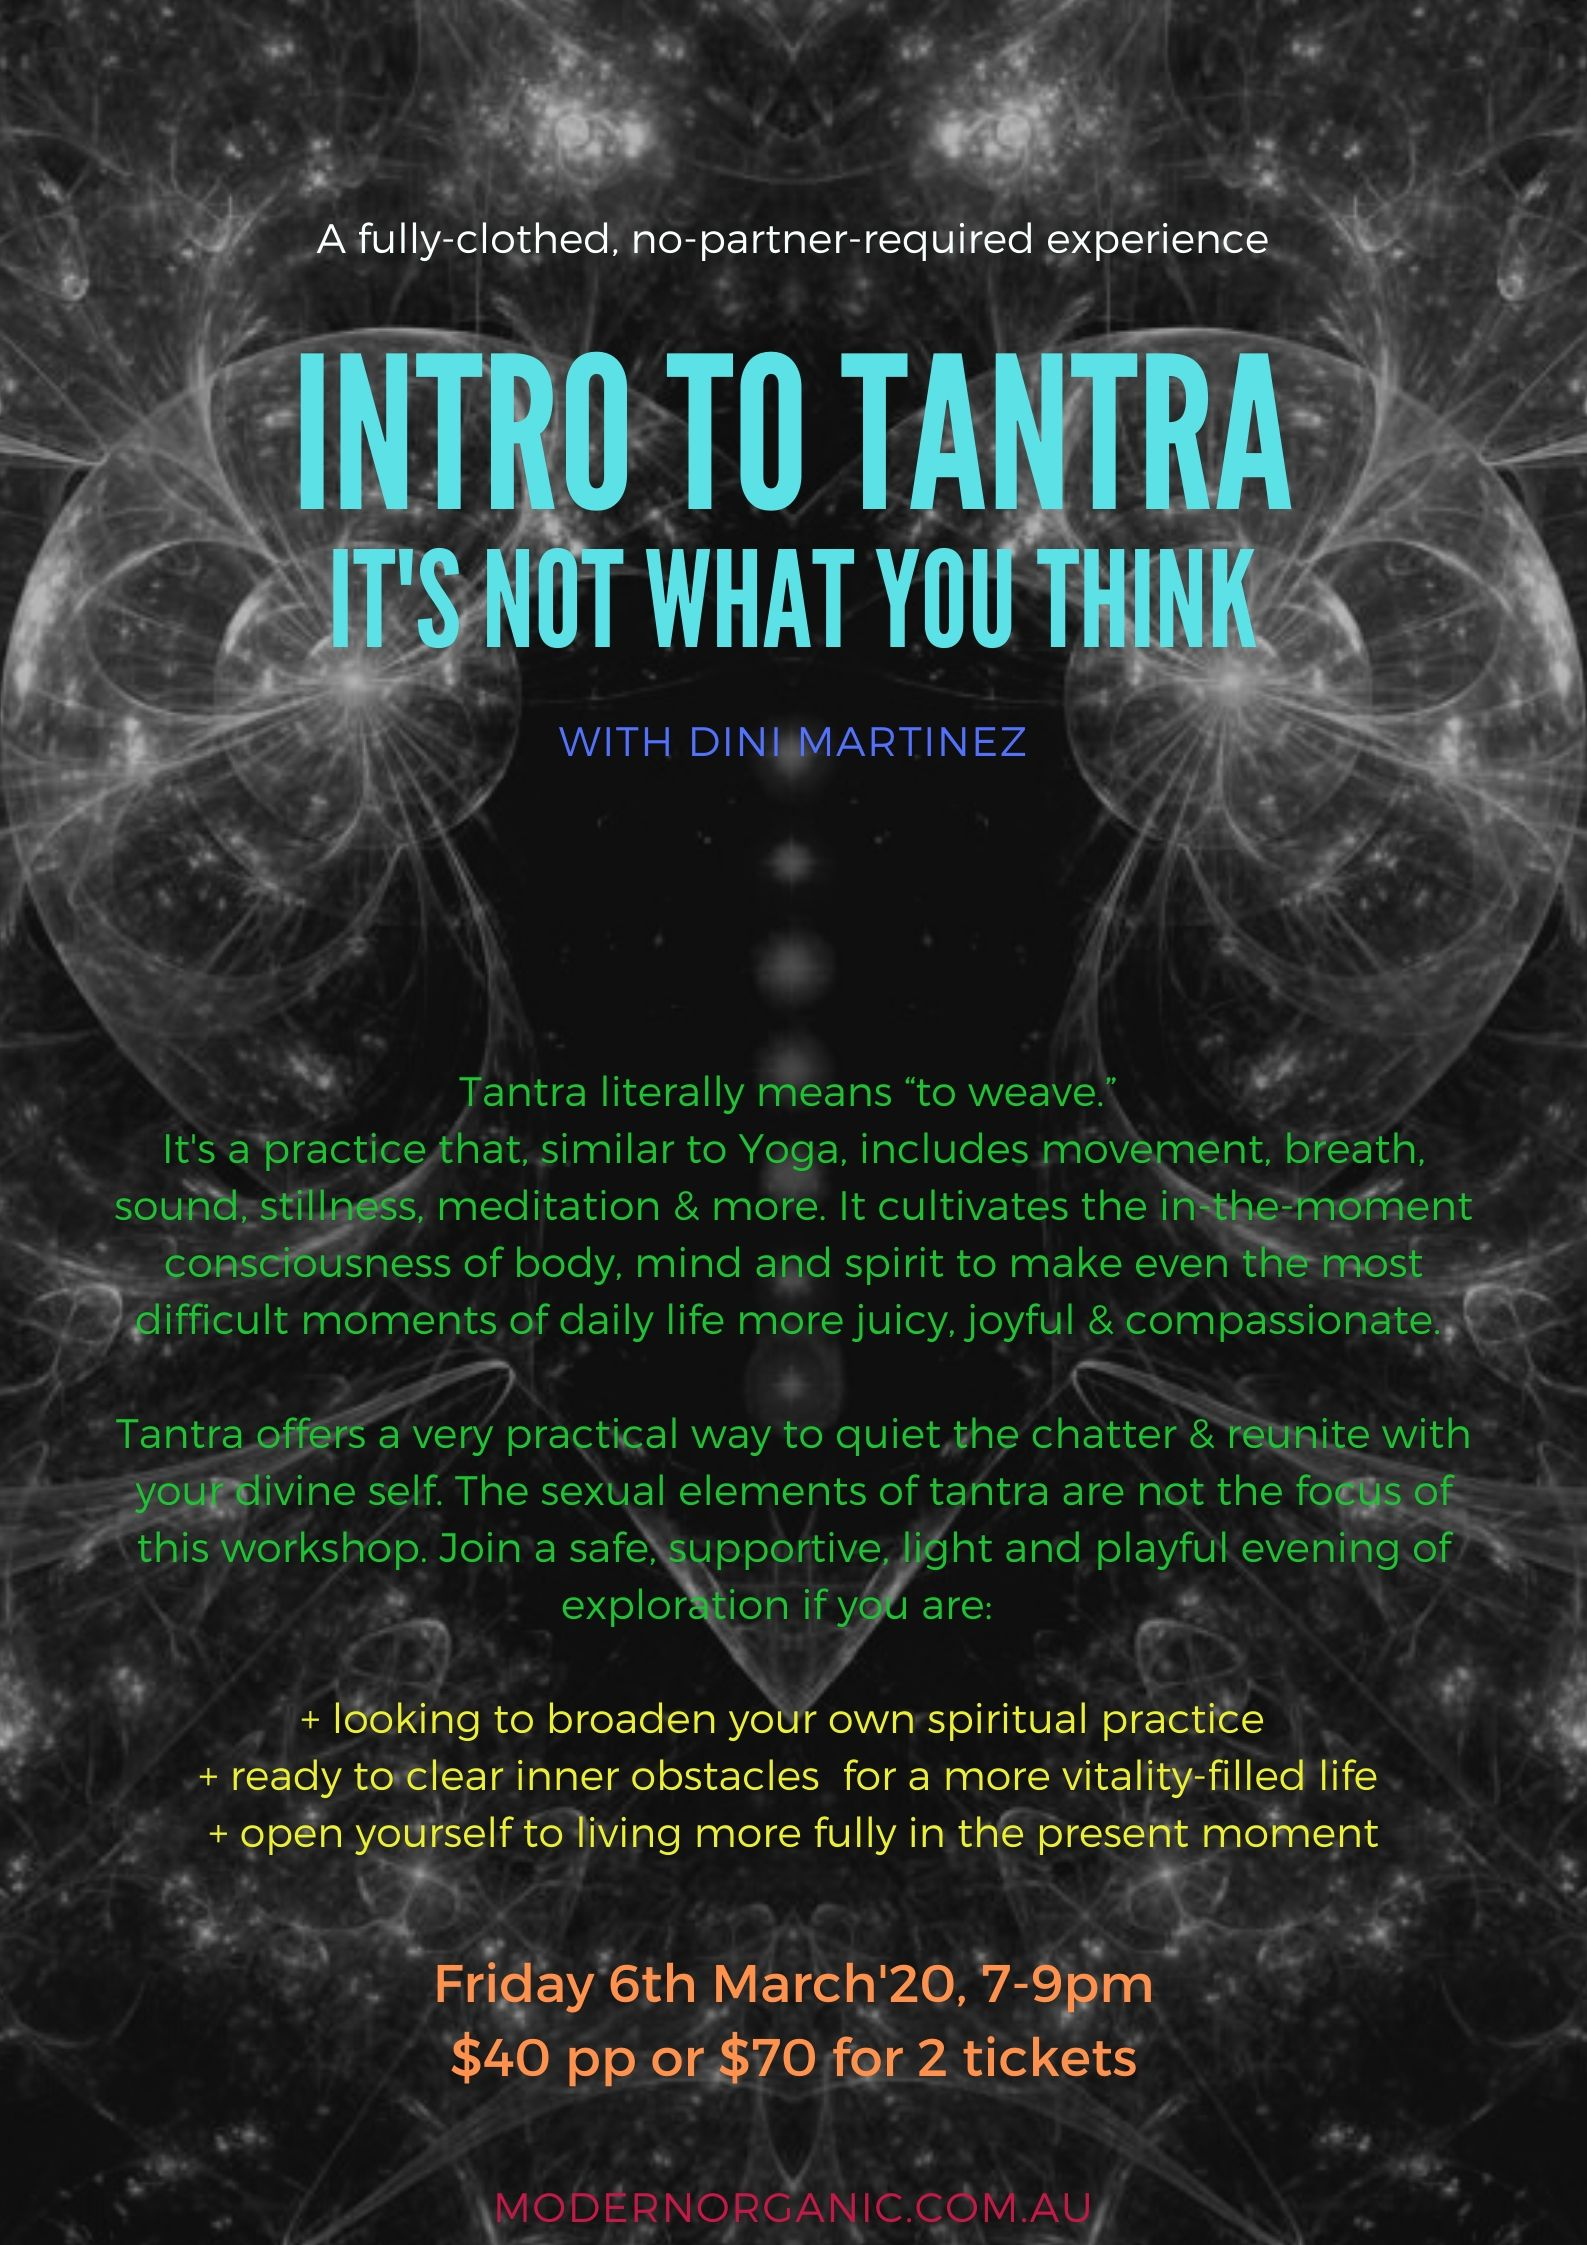 Intro to Tantra It's not what you think_6March20